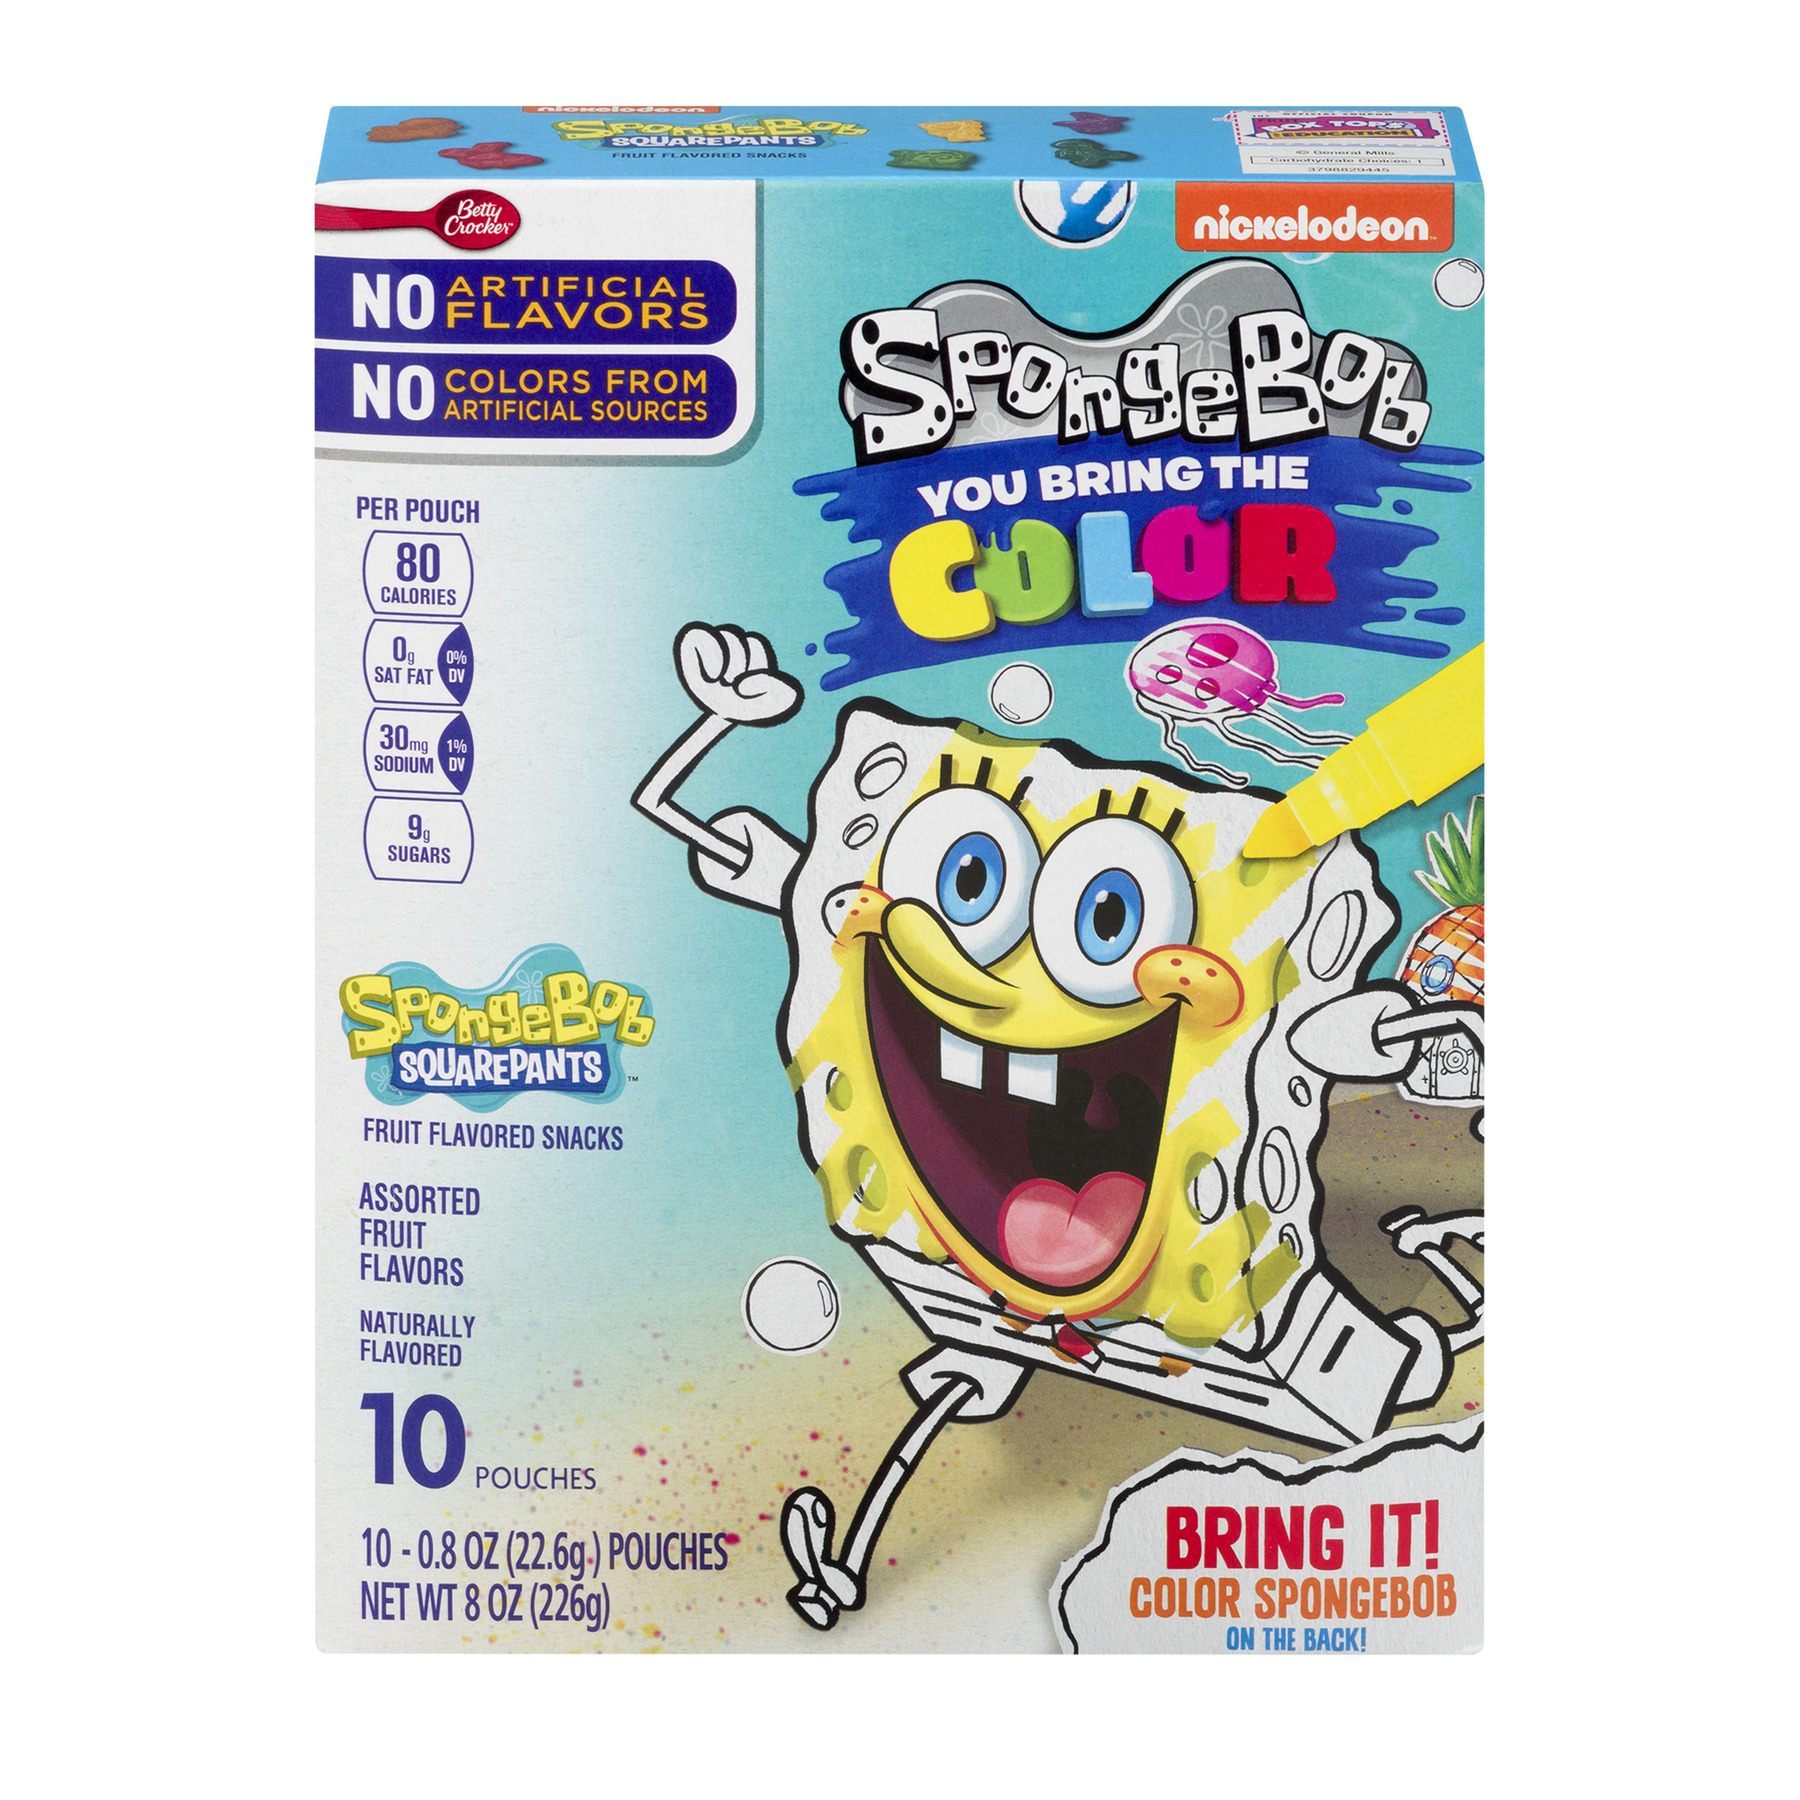 Betty Crocker® SpongeBob Fruit Flavored Snacks Assorted Flavors 10 - 0.8 oz Pouches